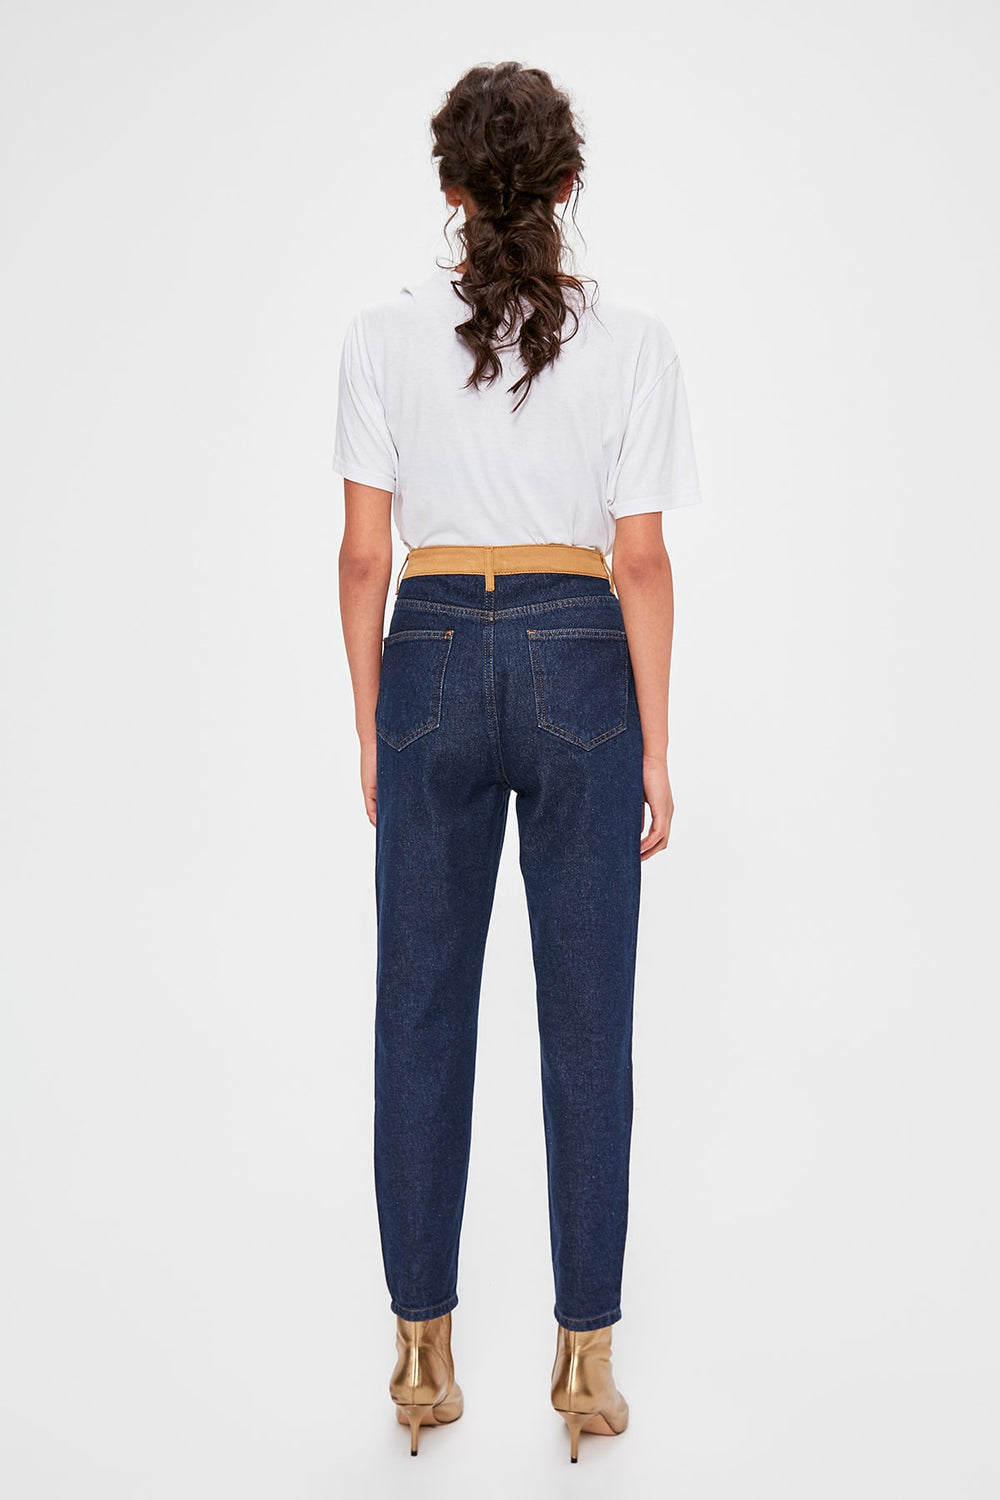 Miss Zut Miss Zut Blue Waist Detailed High Bel Mom Jeans Miss Zut &CO